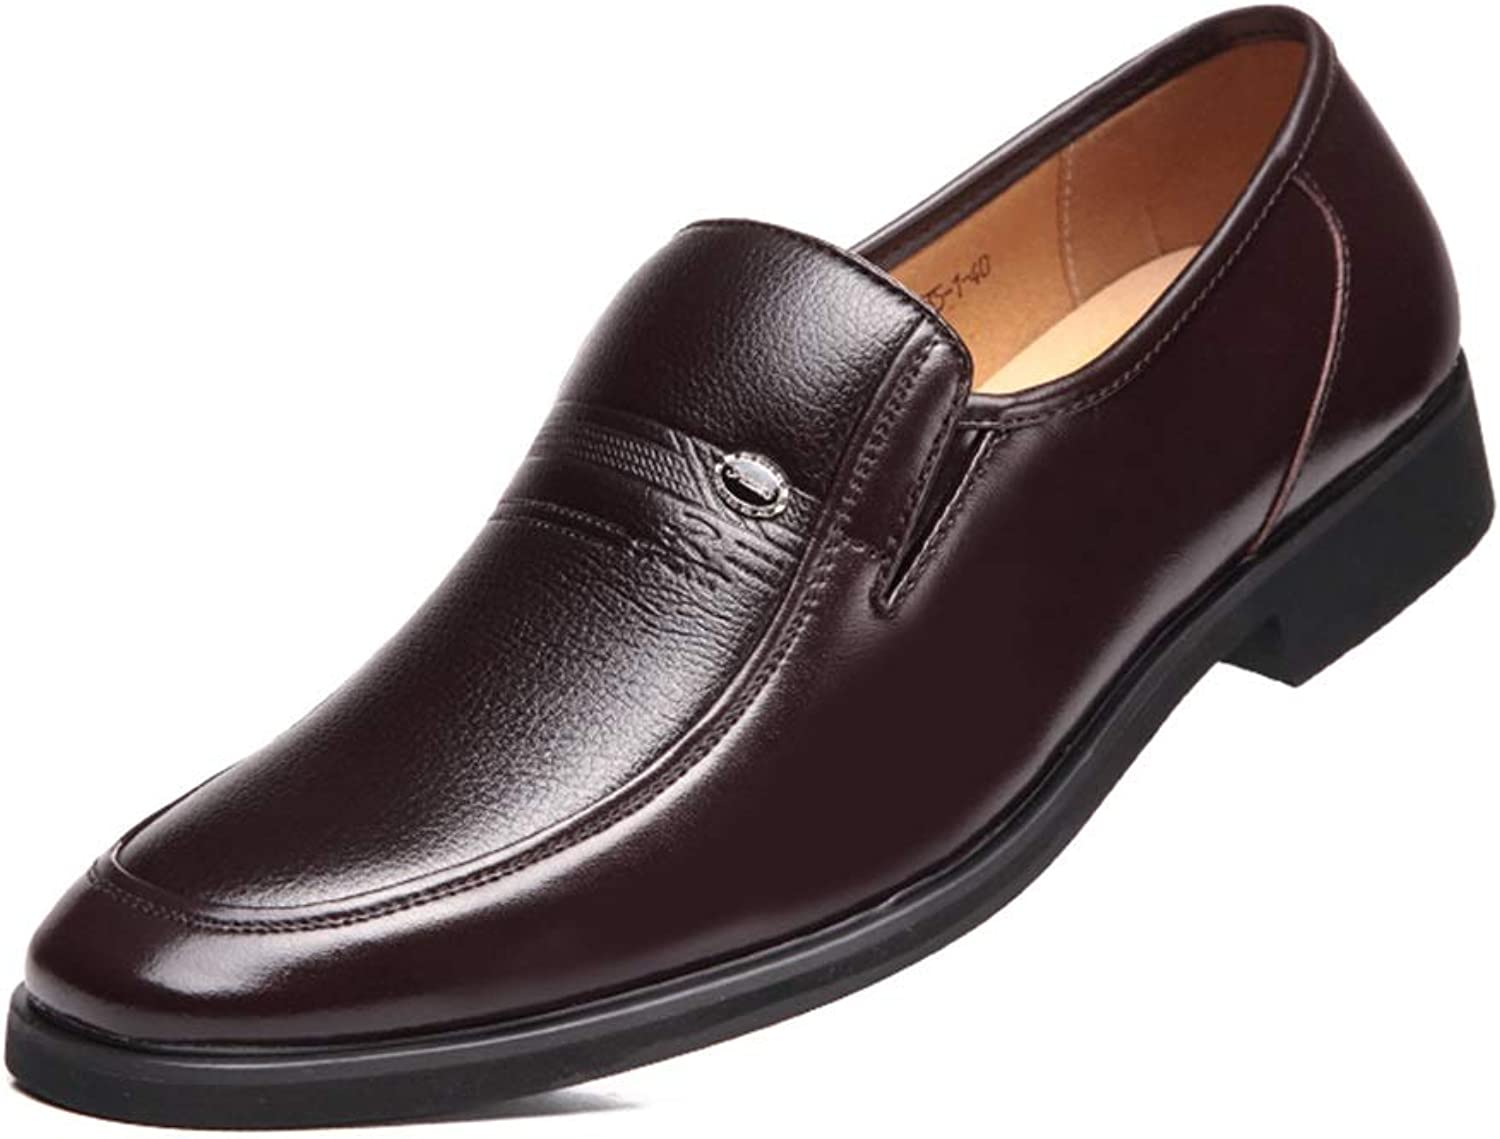 Suit shoes Business Casual shoes Round Head Casual shoes Trend Low to Help Dad shoes Driving shoes (color   Brown, Size   41)